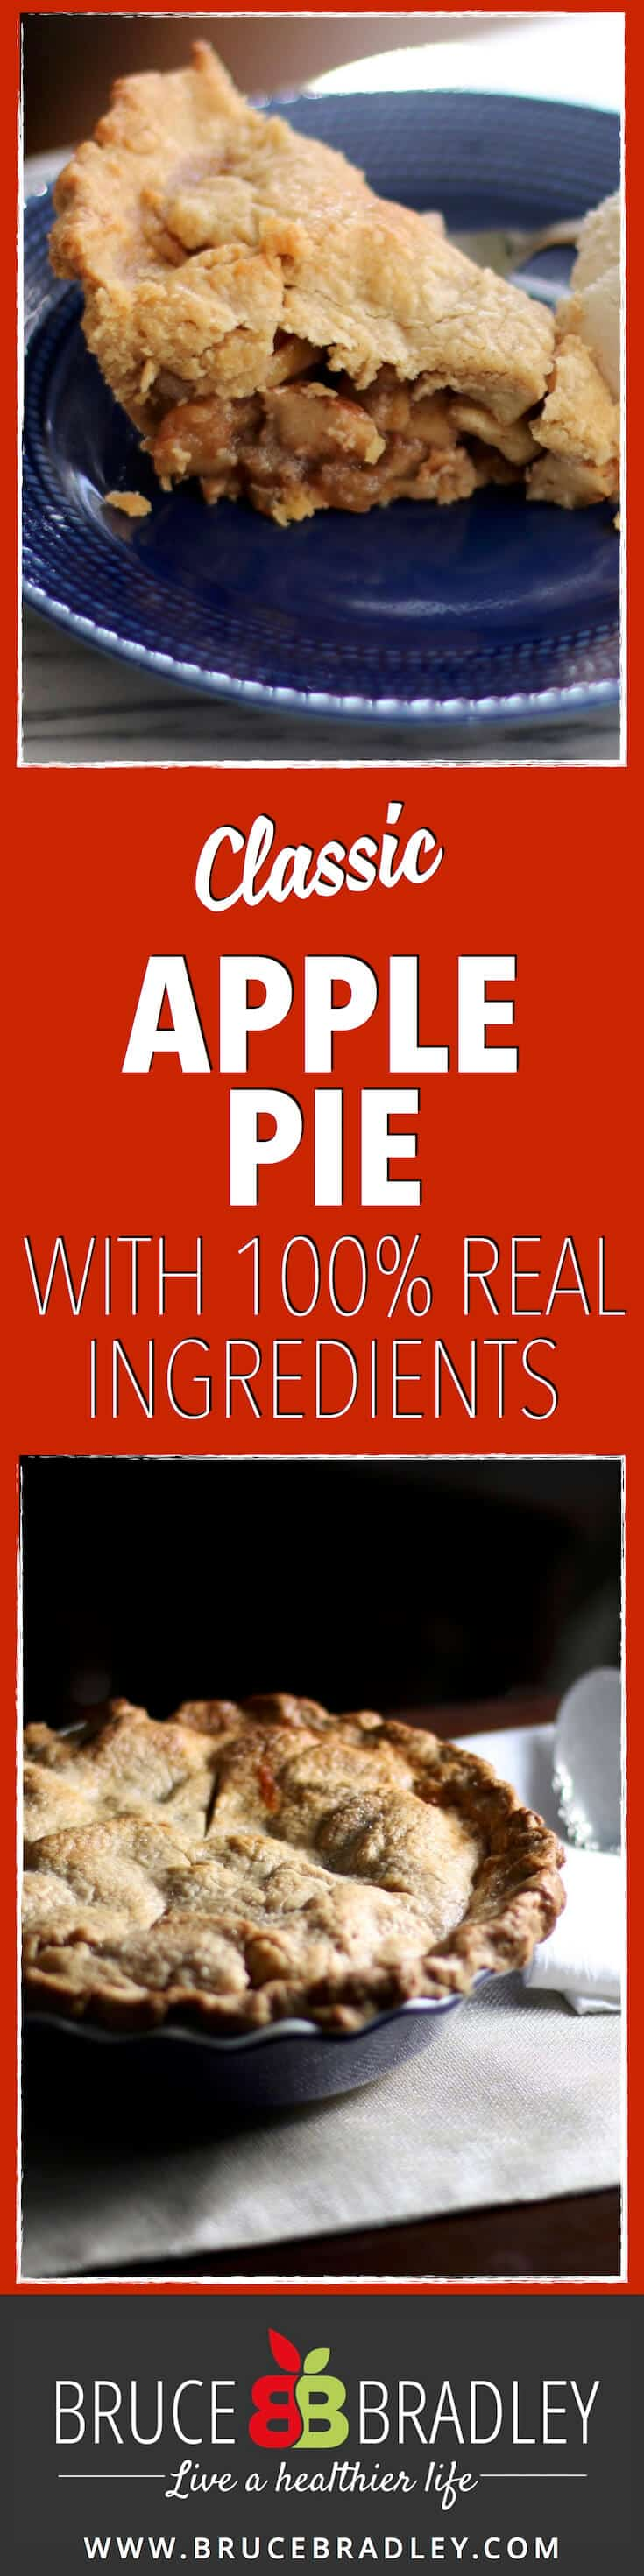 Bruce Bradley's Classic Apple Pie with a Whole Wheat Crust is delicious and uses real ingredients!